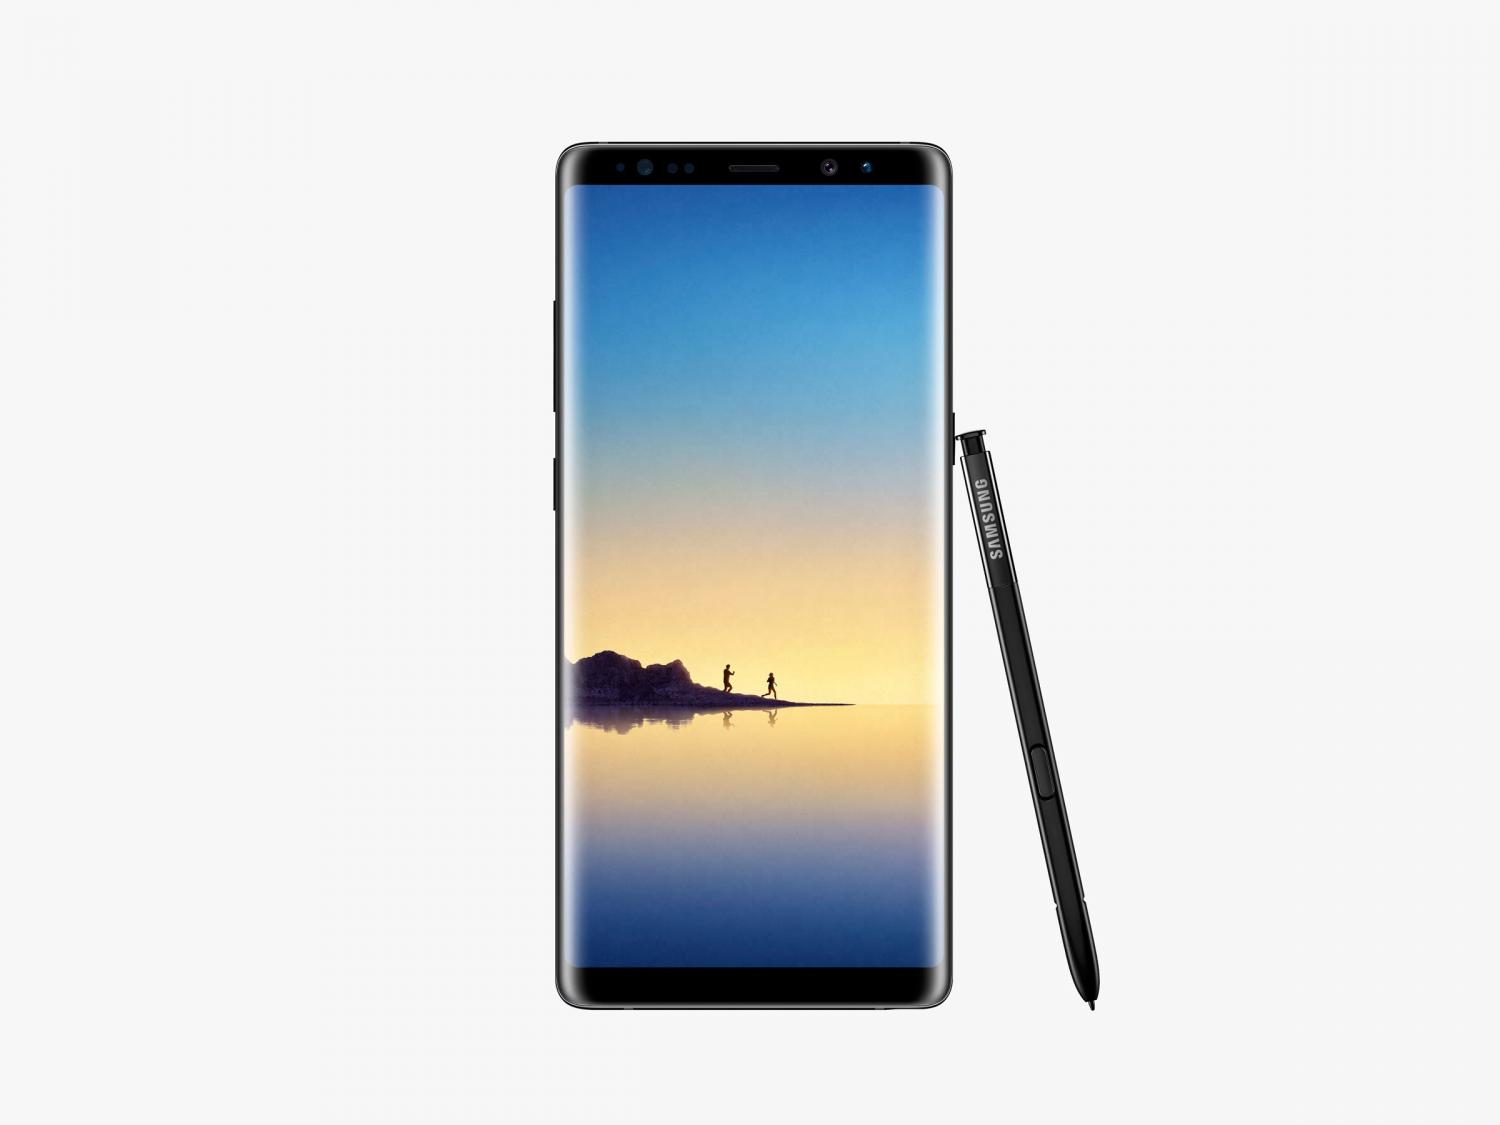 Samsung Introduces the Galaxy Note 8 Smartphone